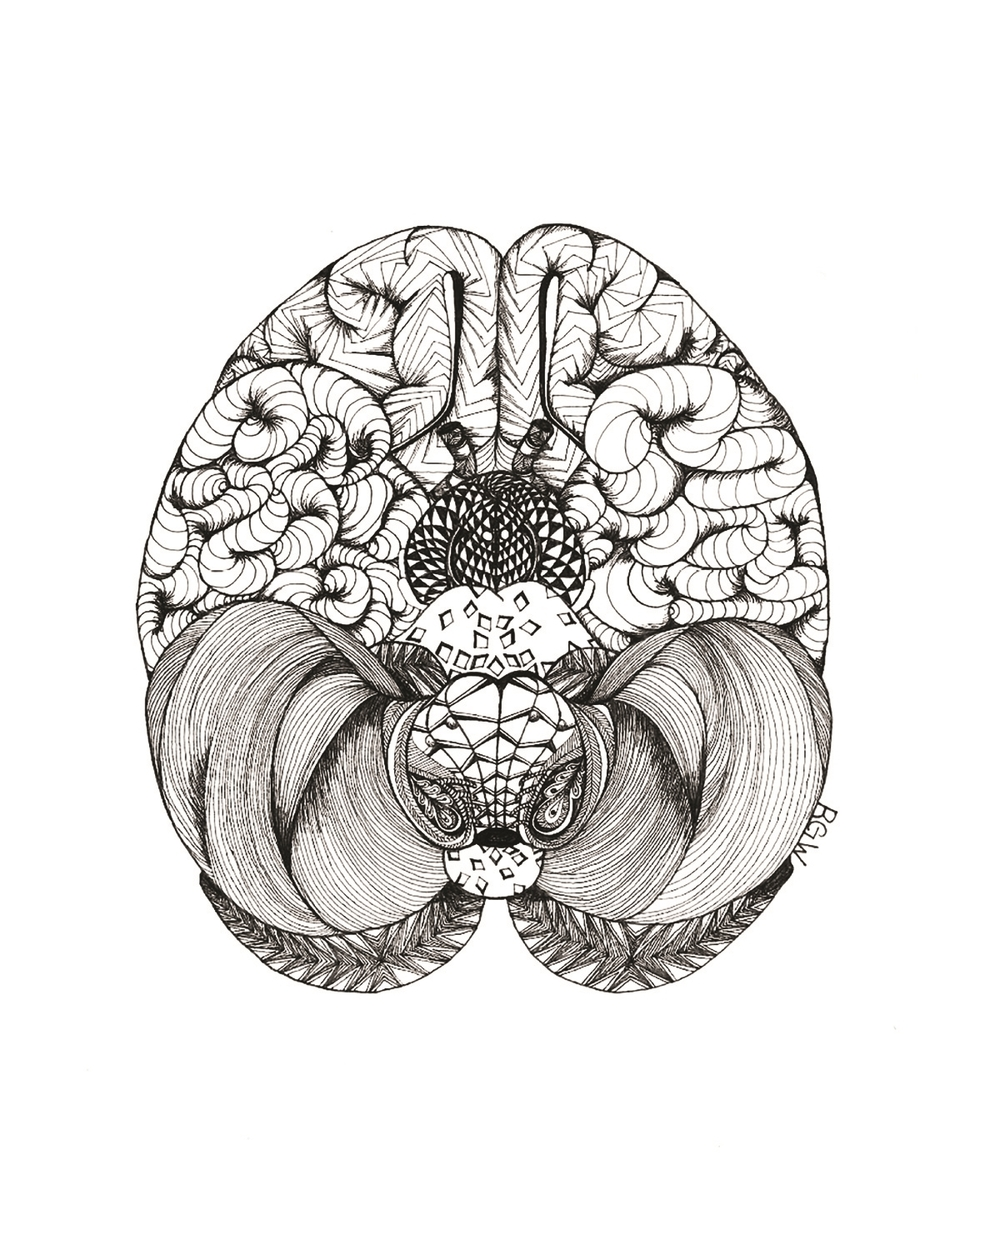 """anatomy: brain (bottom view)"